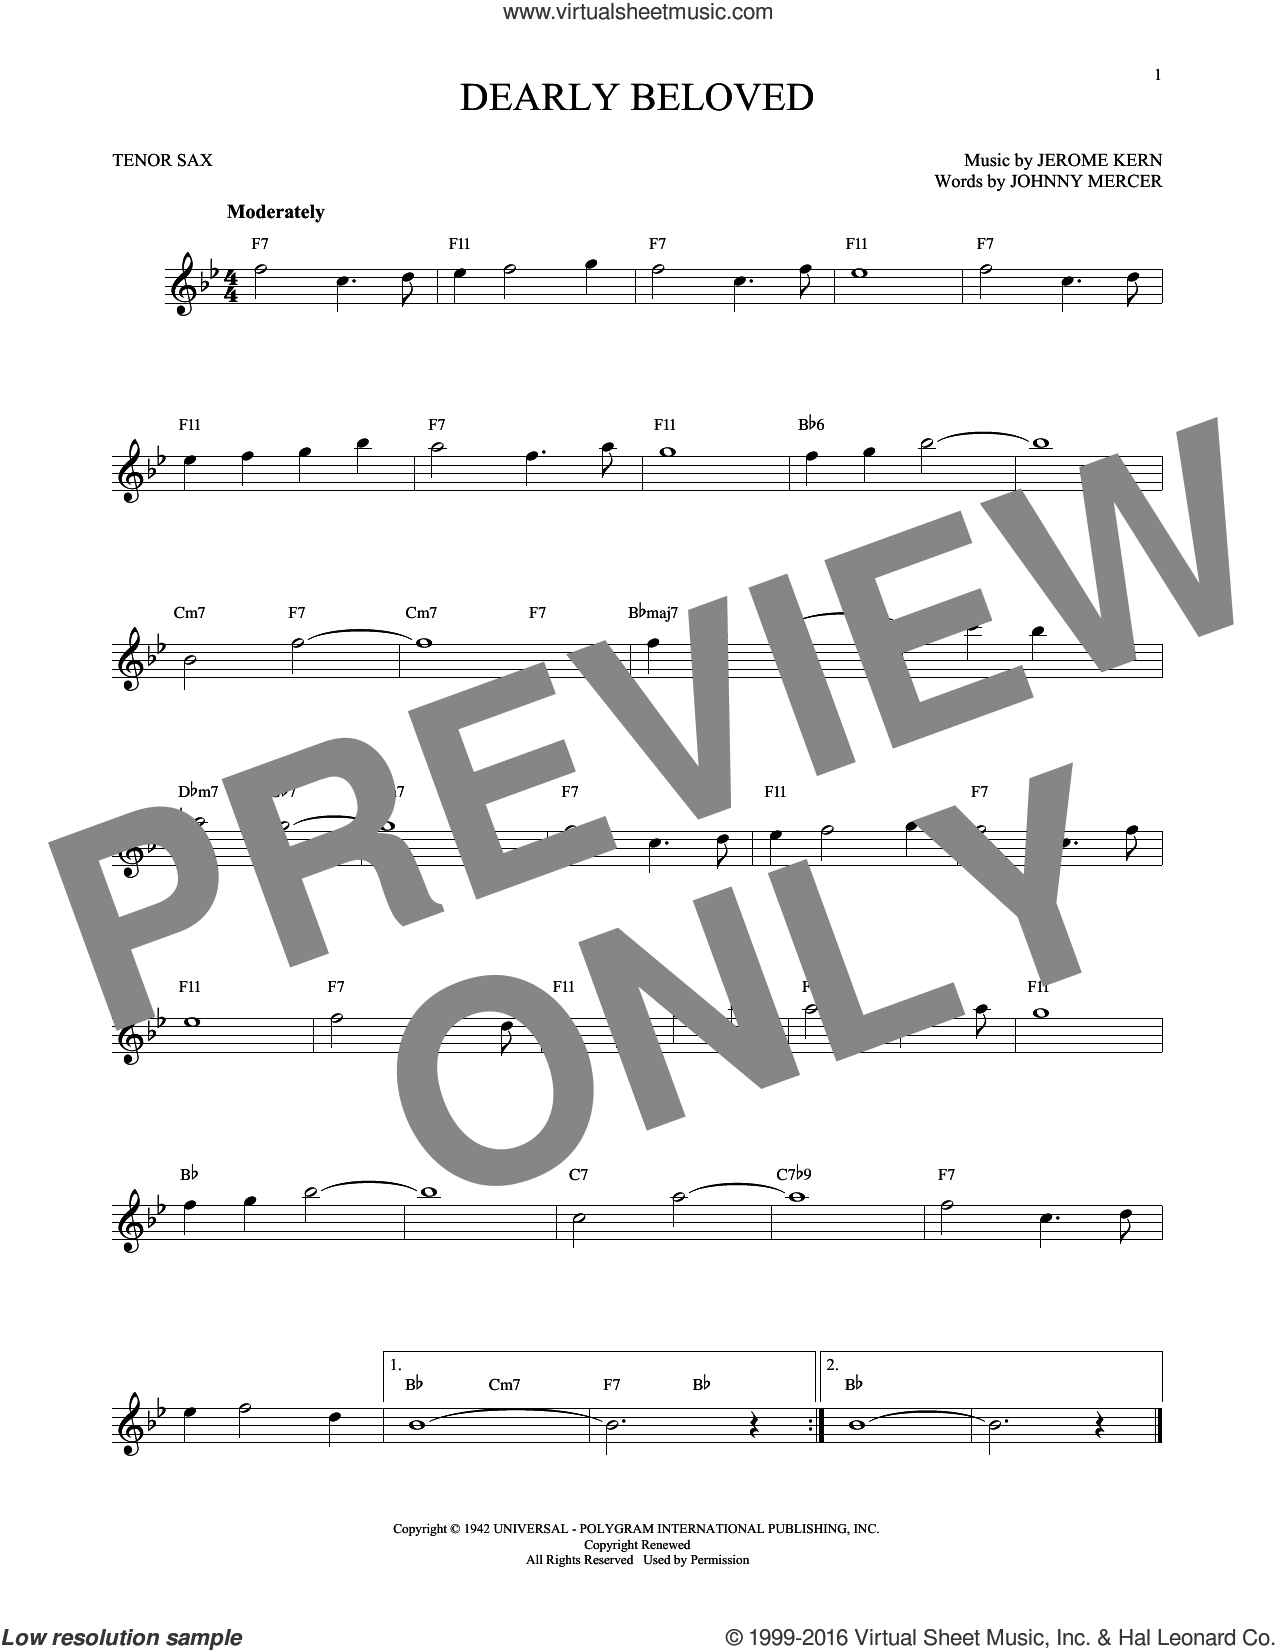 Dearly Beloved sheet music for tenor saxophone solo by Jerome Kern and Johnny Mercer, intermediate skill level